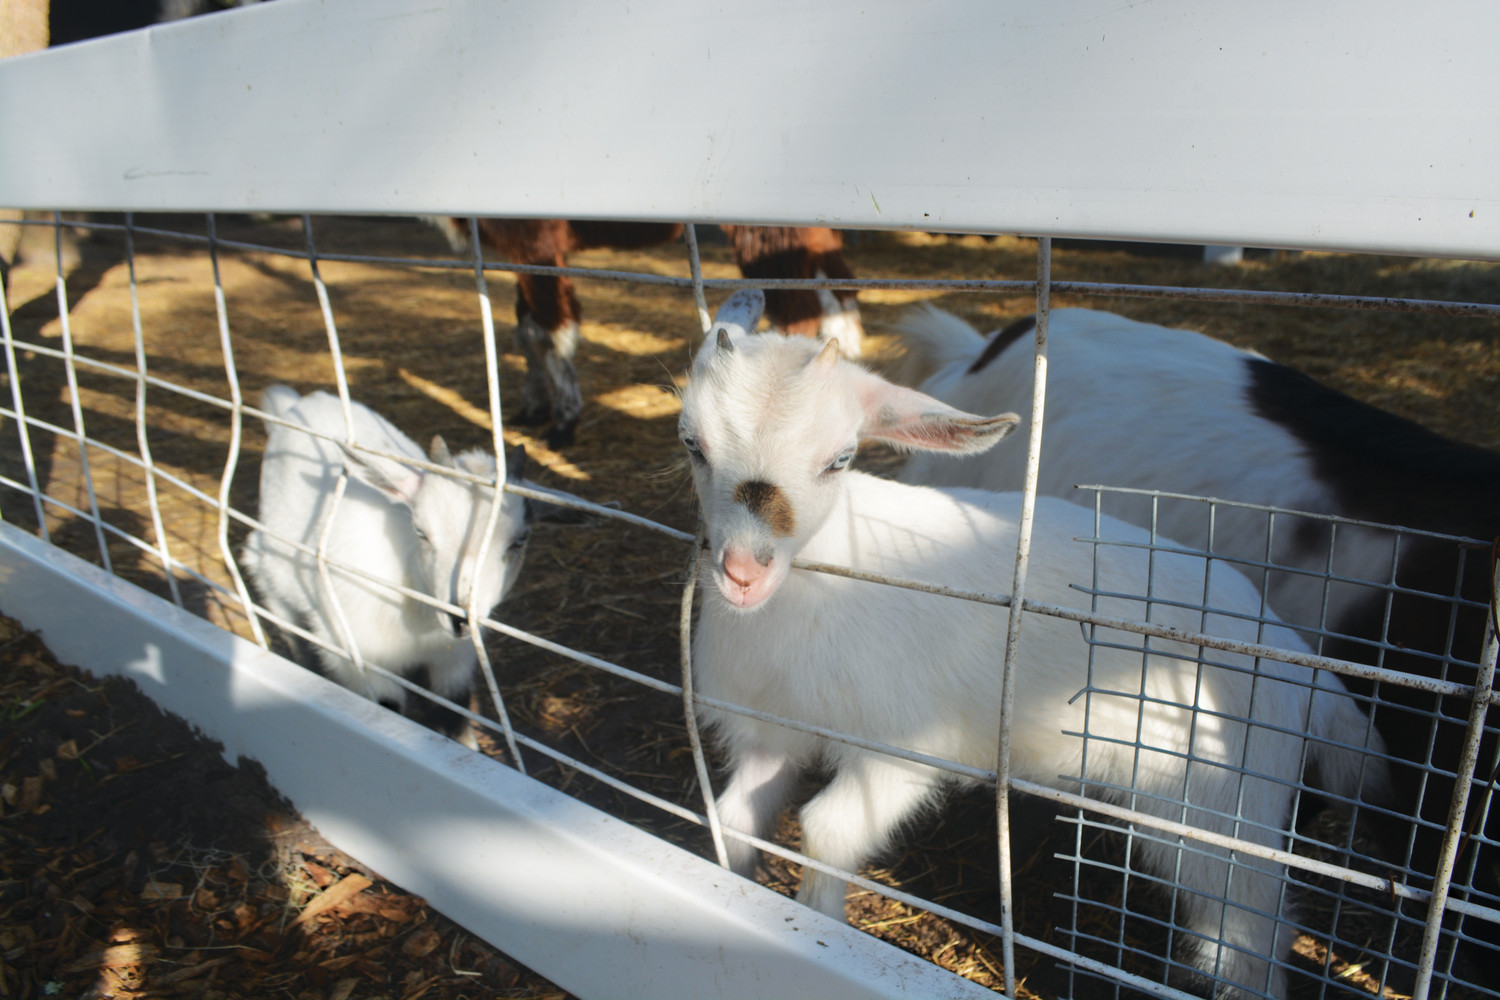 A small goat greets visitors at the animal preserve at Fantasy Farms.